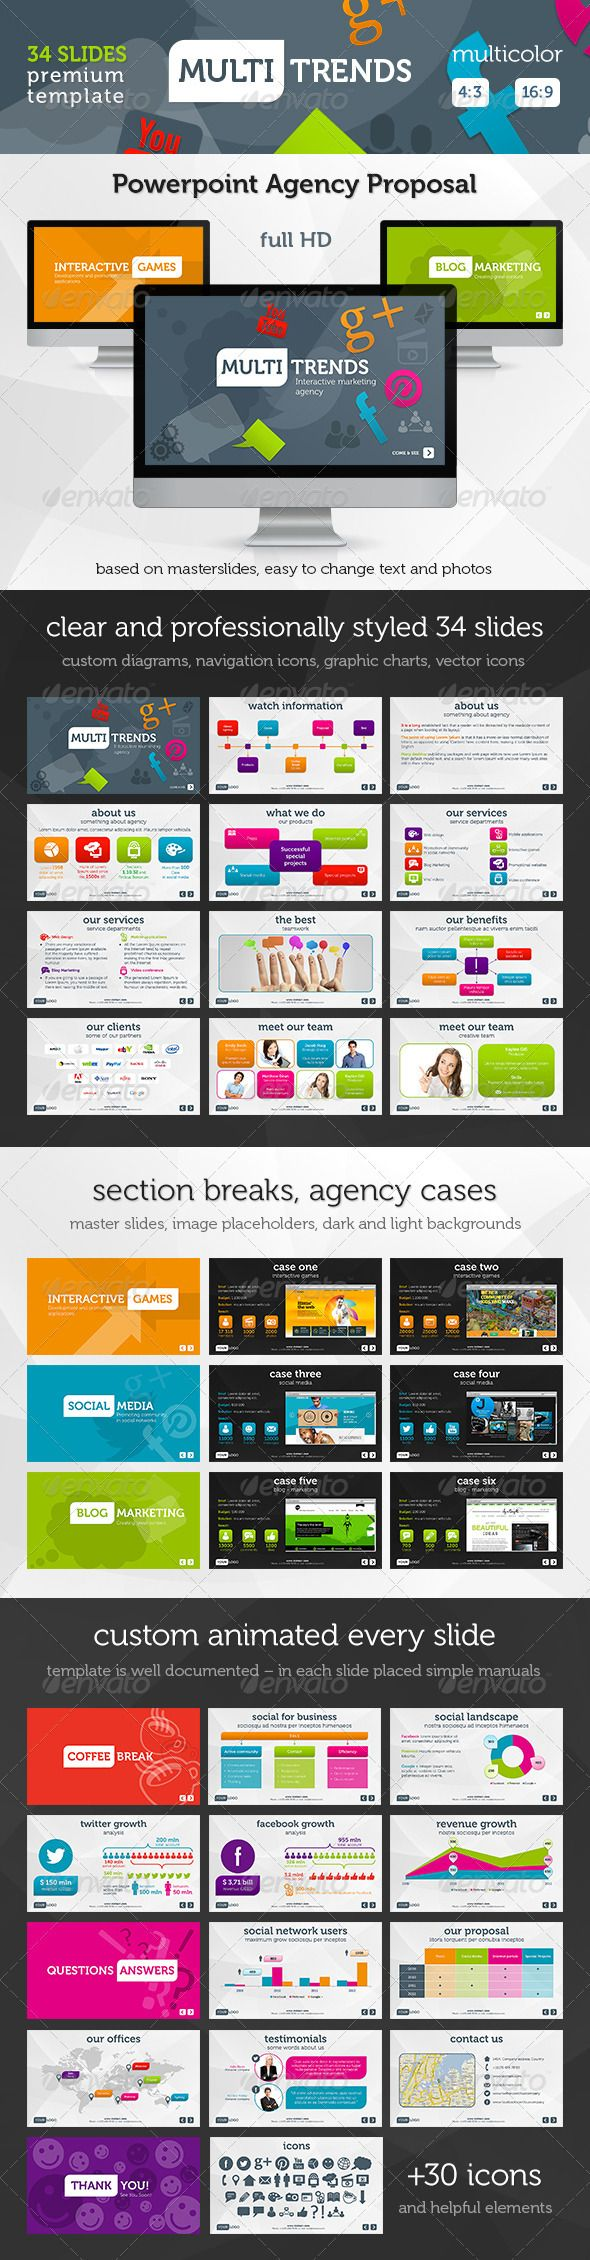 Multi Trends PowerPoint Presentation Template